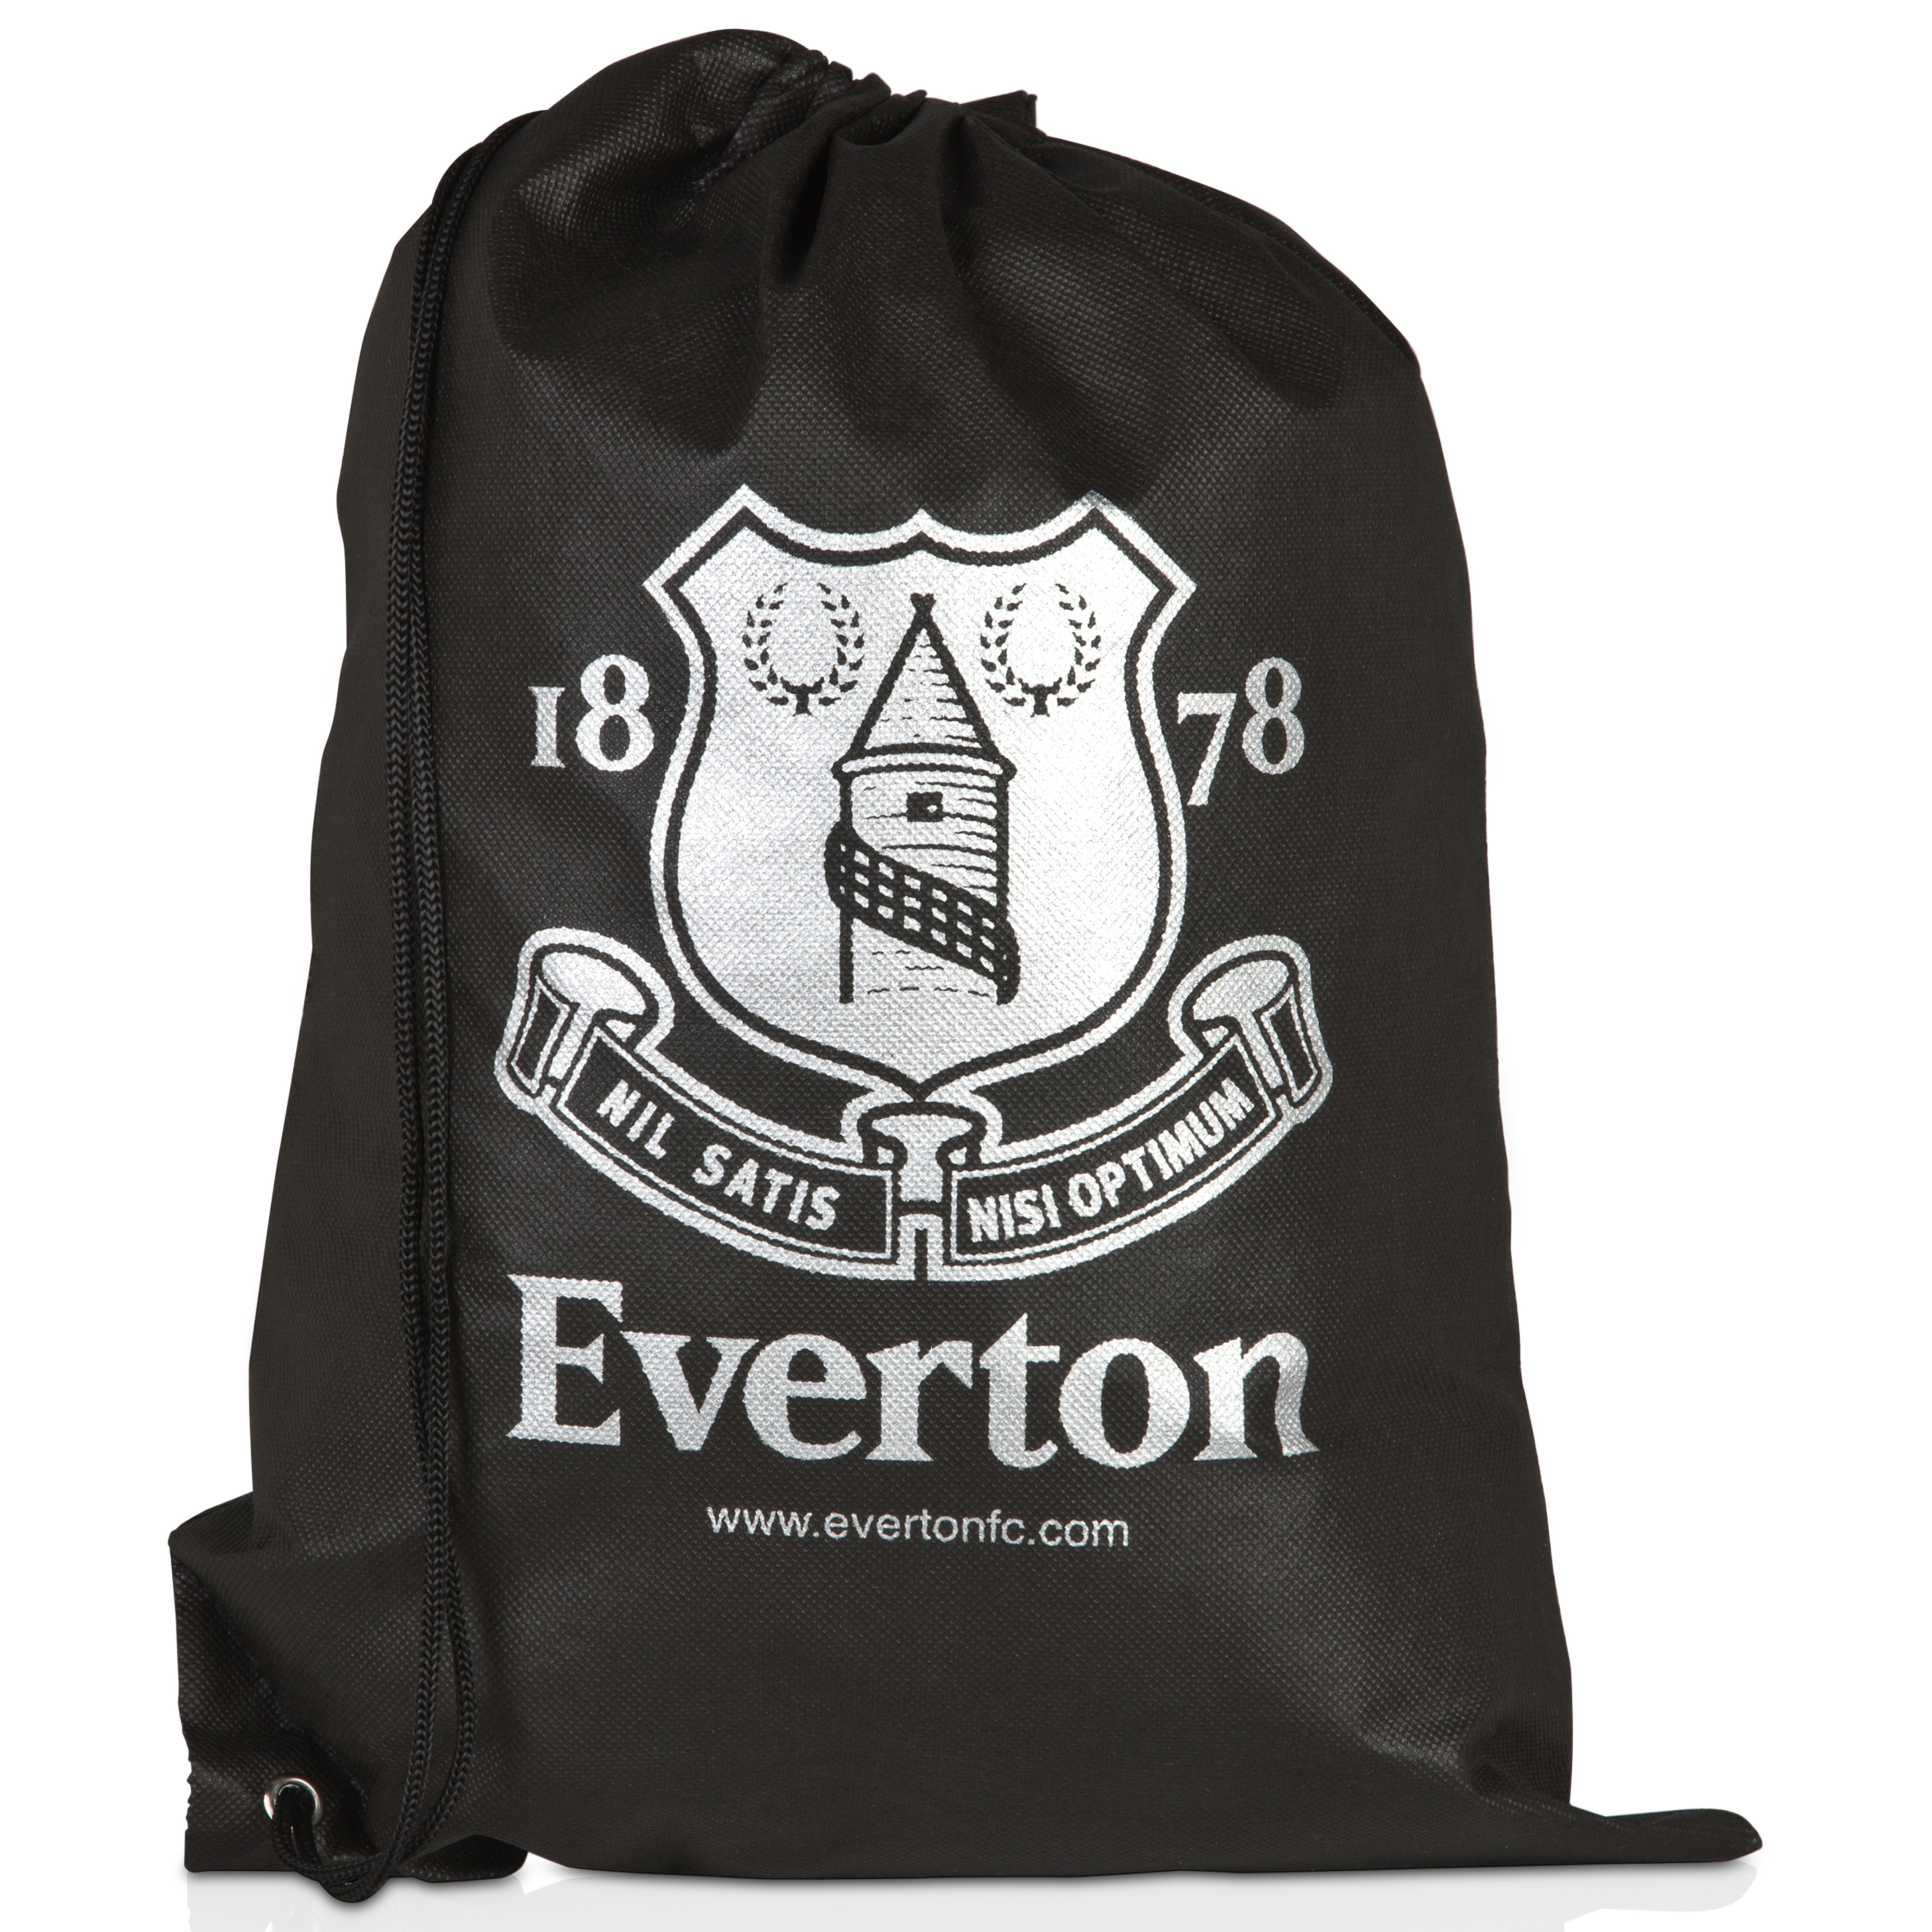 Everton Rope Bag for Life